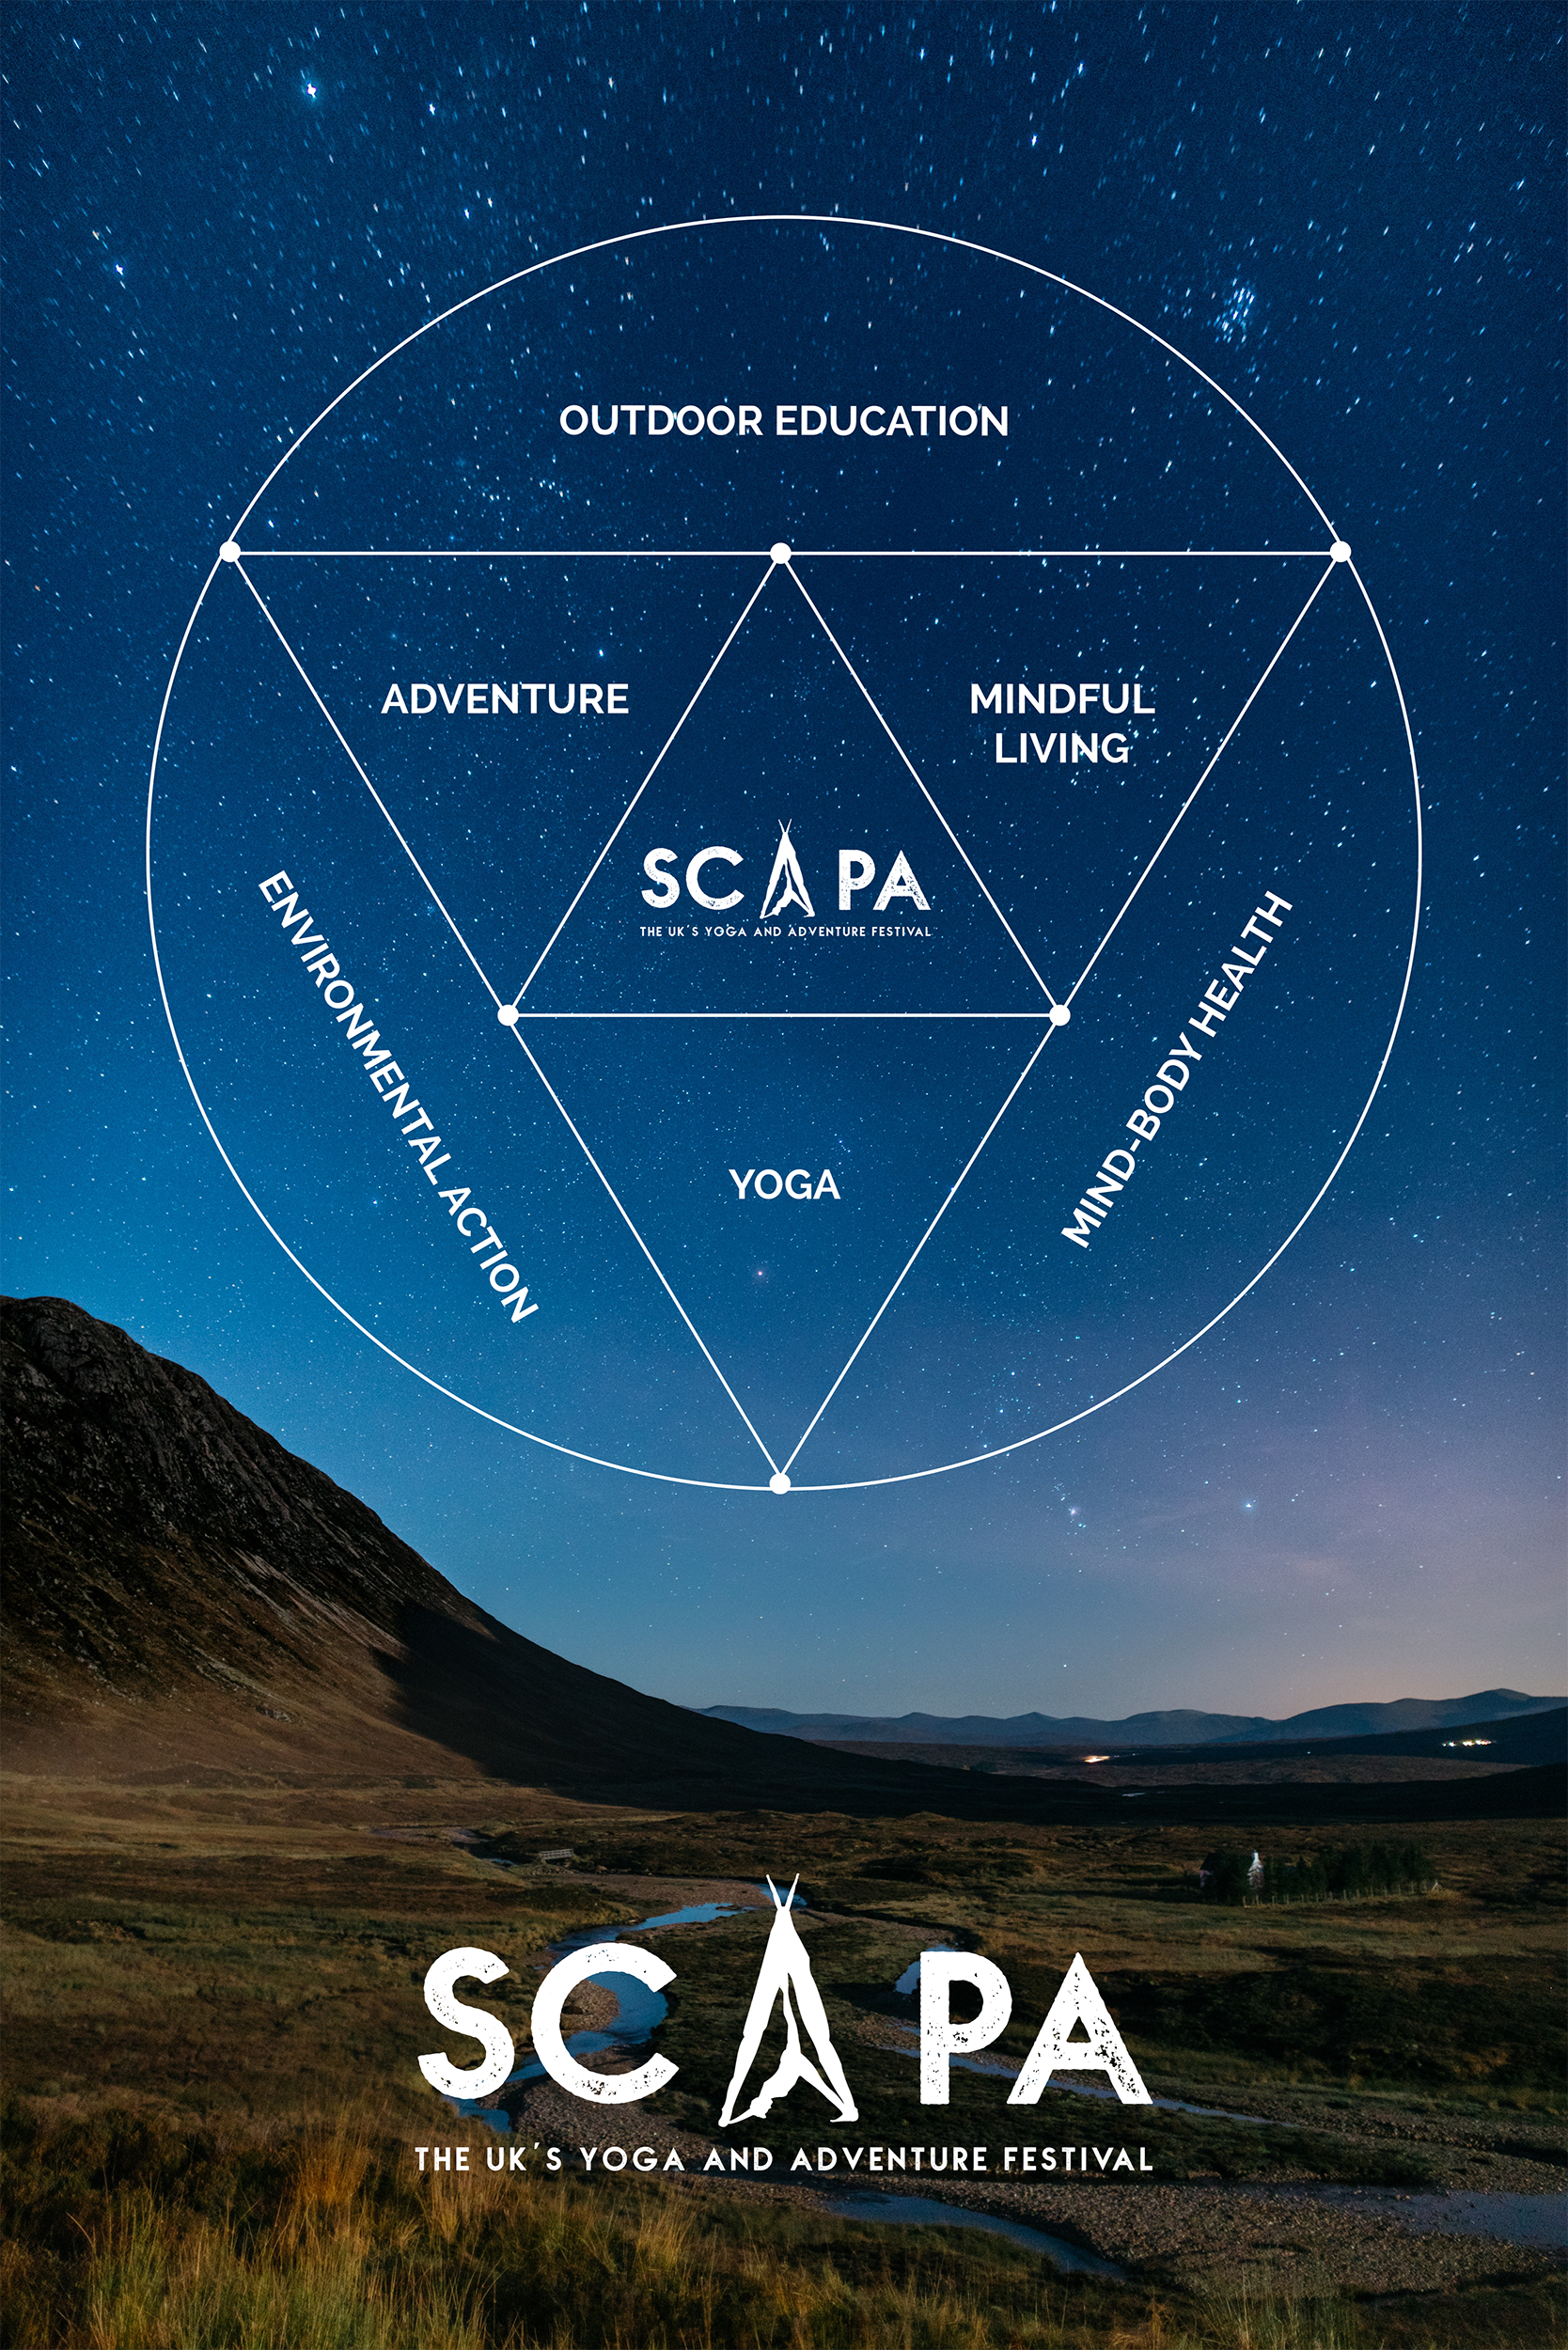 scapa fest scotland yoga festival adventure outdoor education environmental action mind-body health